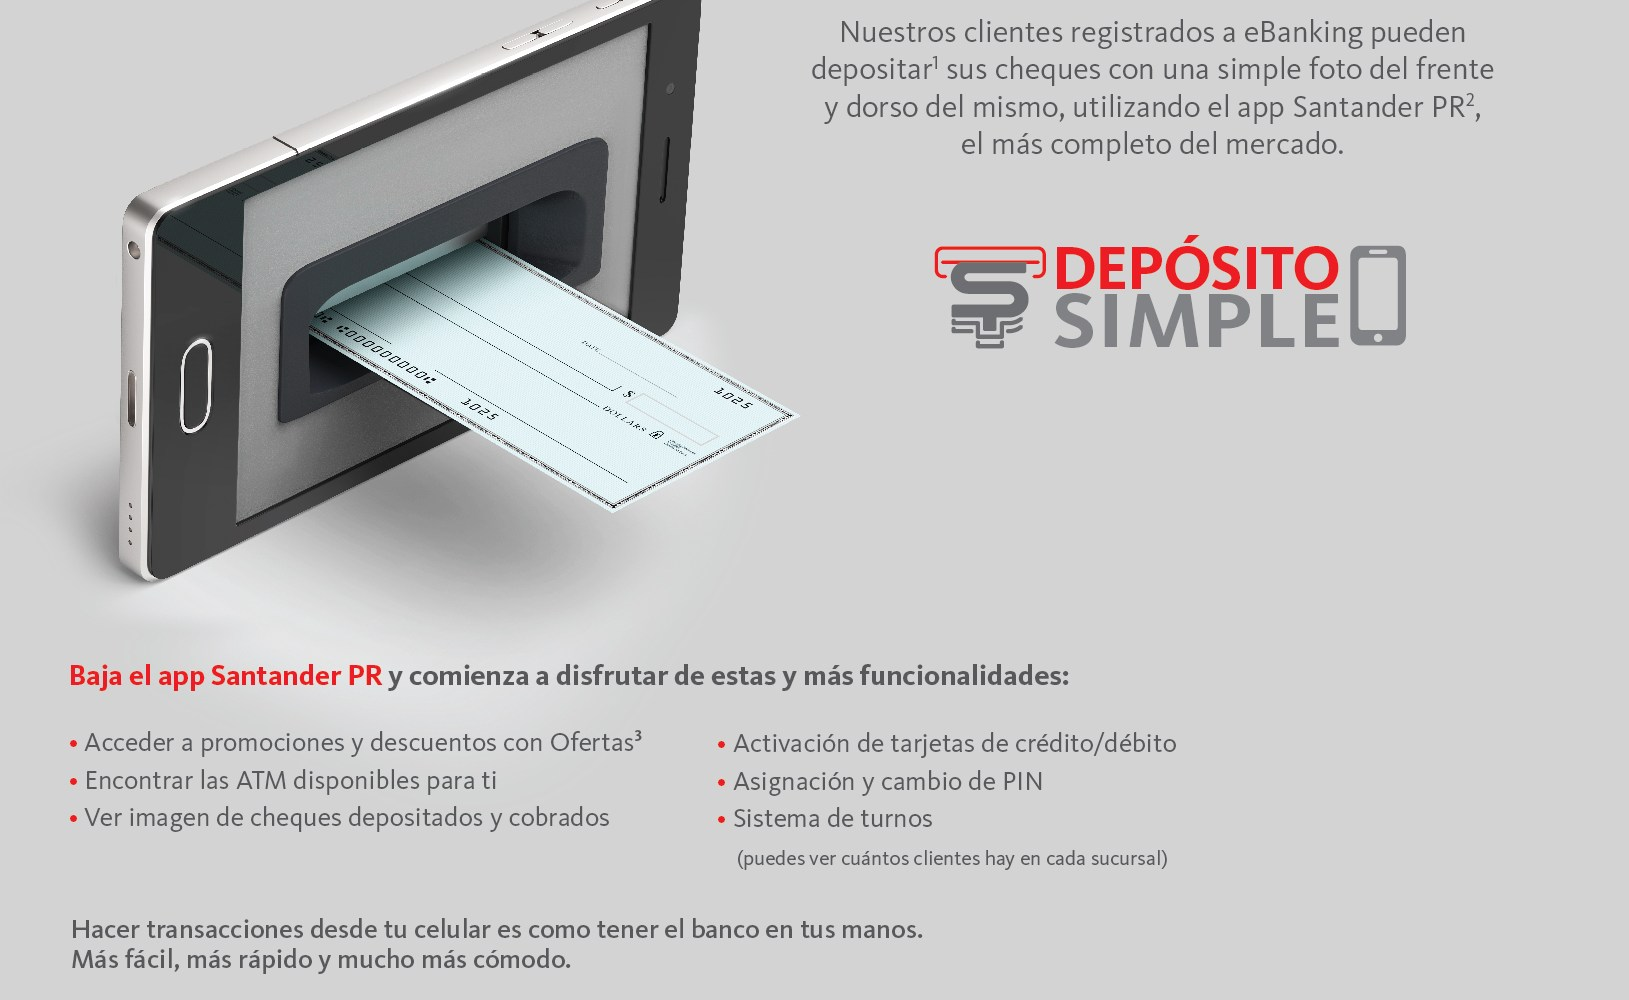 Santander launches 'Depósito Simple' mobile check deposit